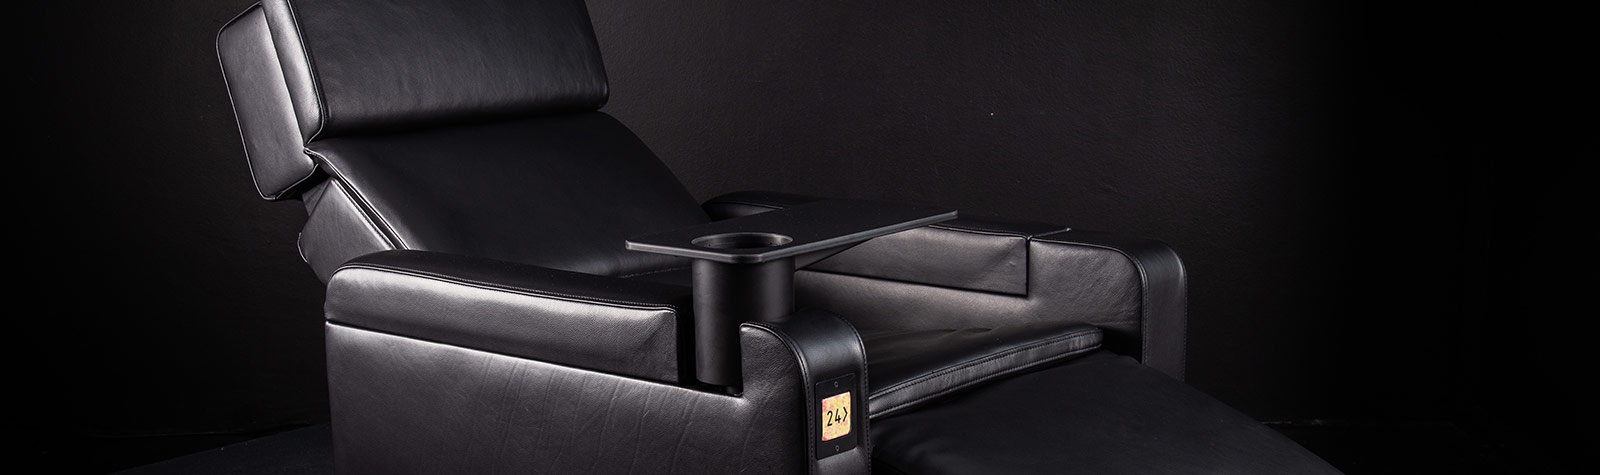 Corporate product photography of luxury cinematic seating